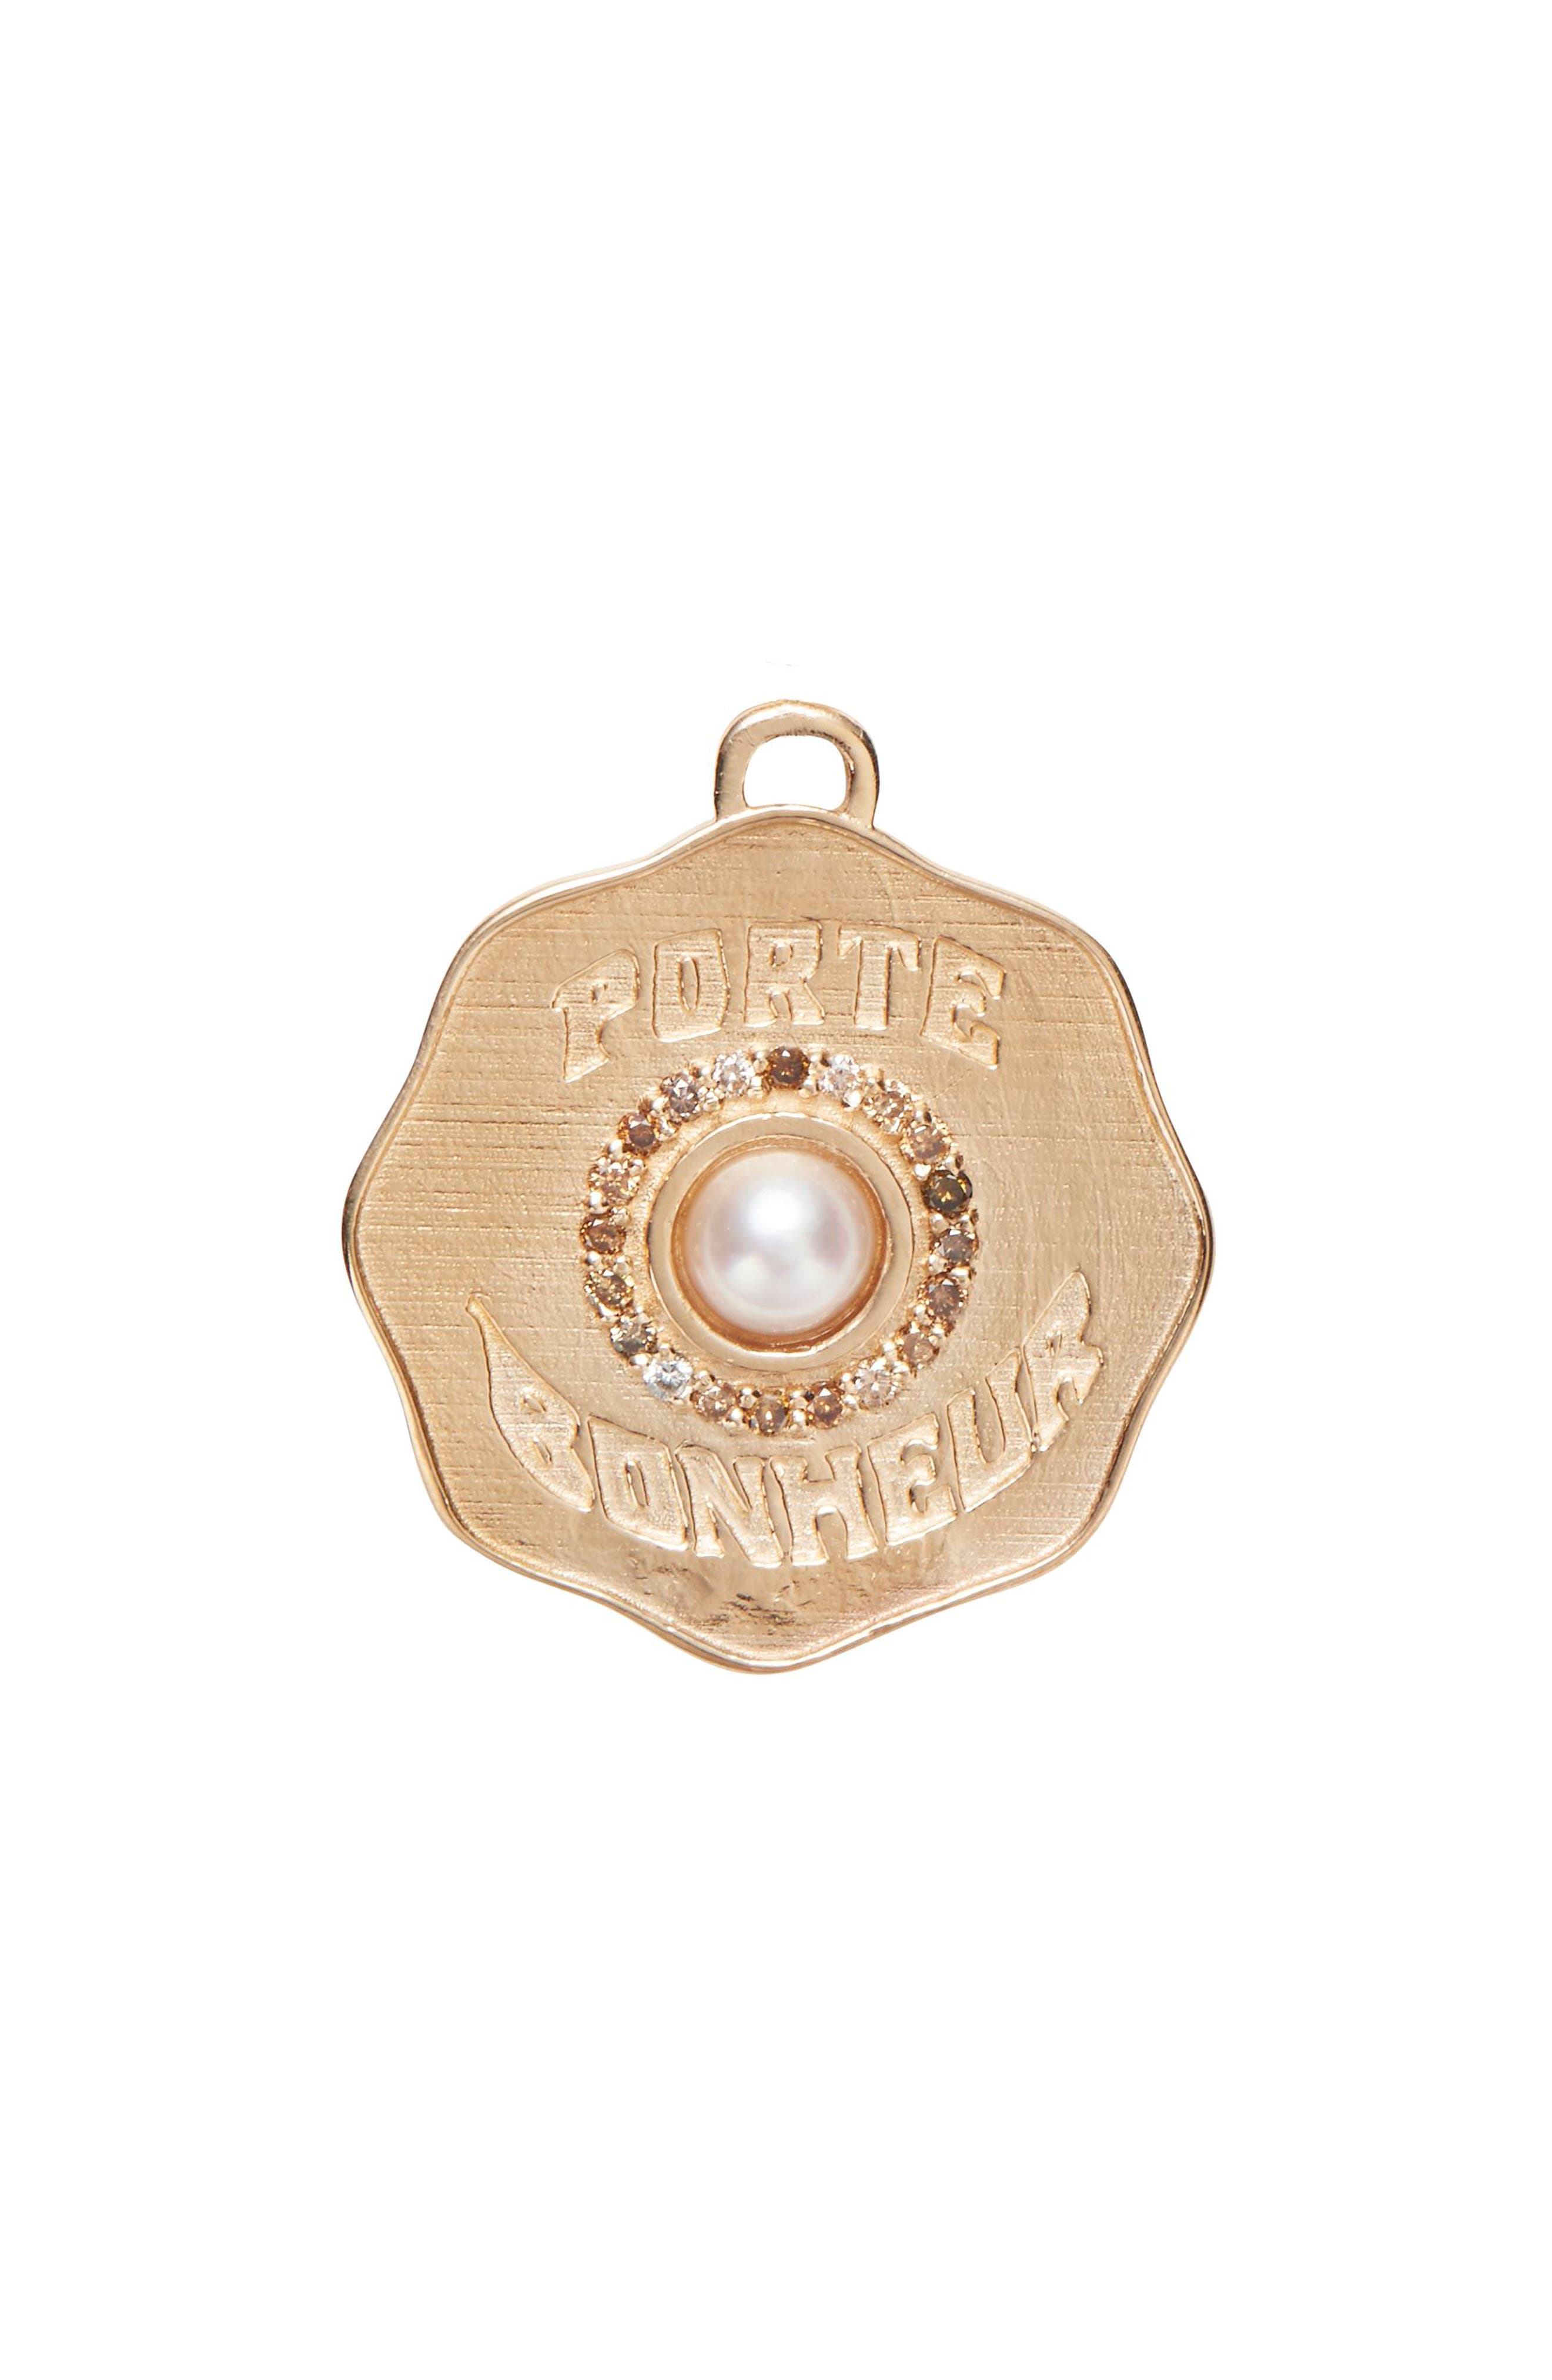 MARLO LAZ Porte Bonheur Pearl Coin Charm, Main, color, YELLOW GOLD